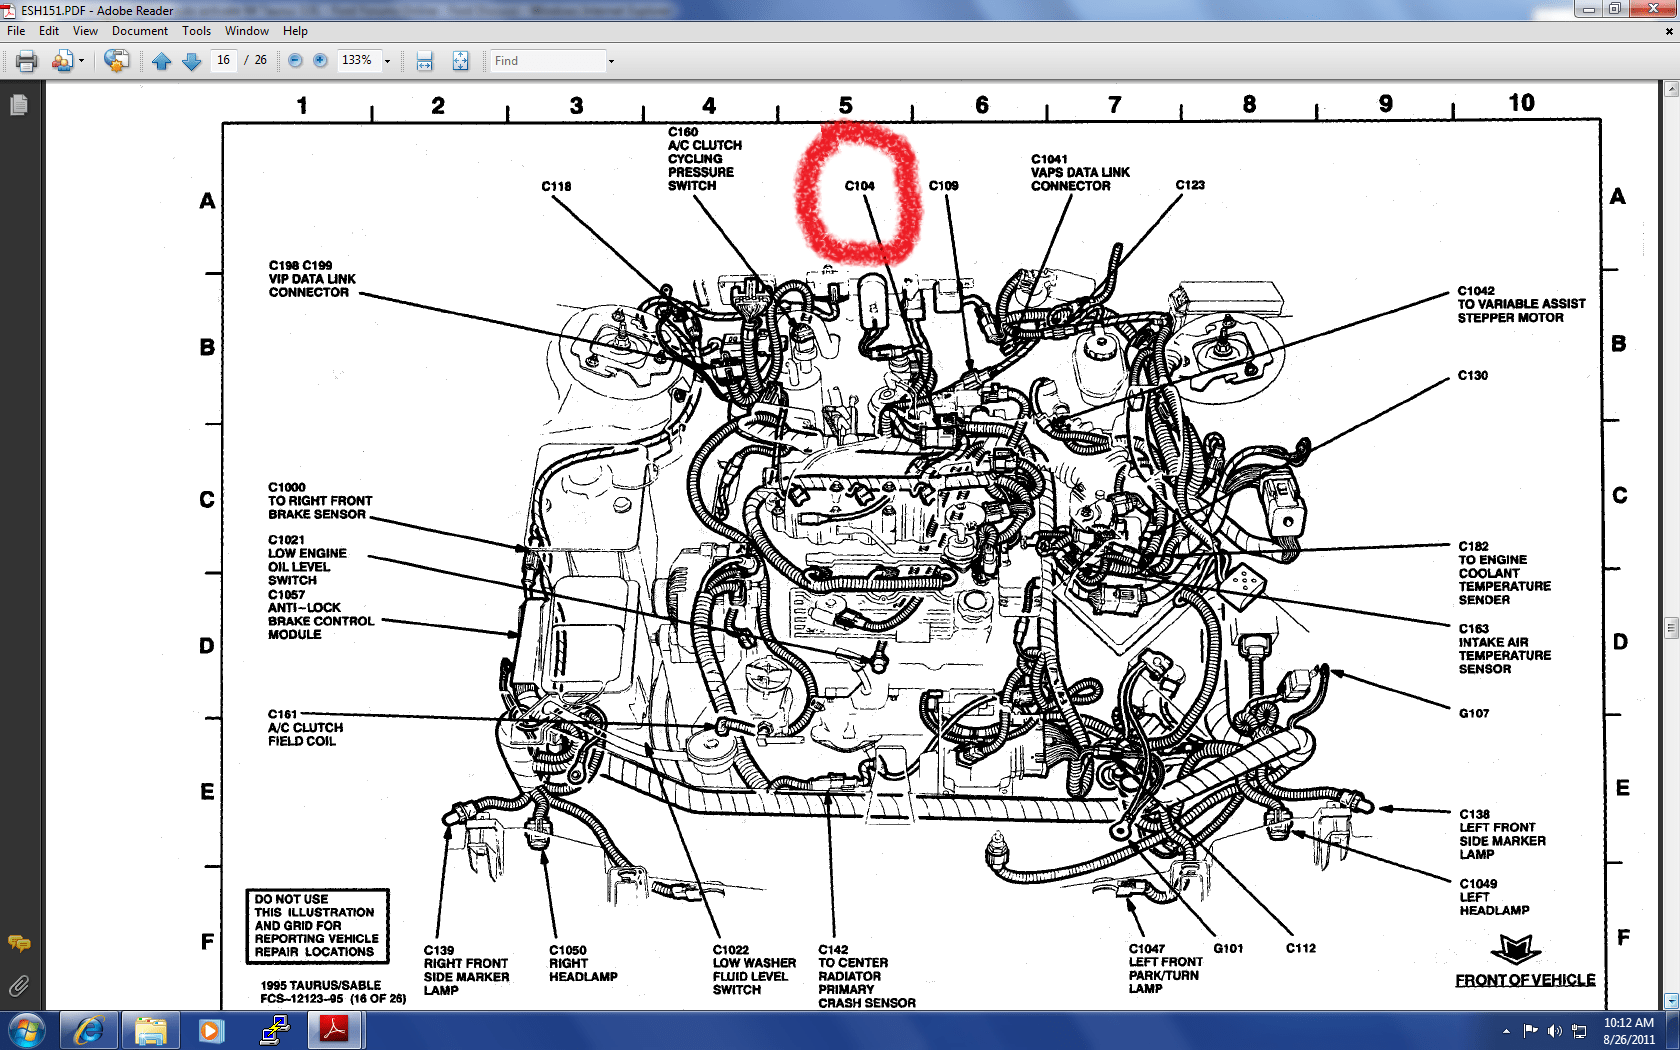 hight resolution of 97 ford taurus wiring diagram eeec wiring diagram97 ford taurus wiring diagram eeec